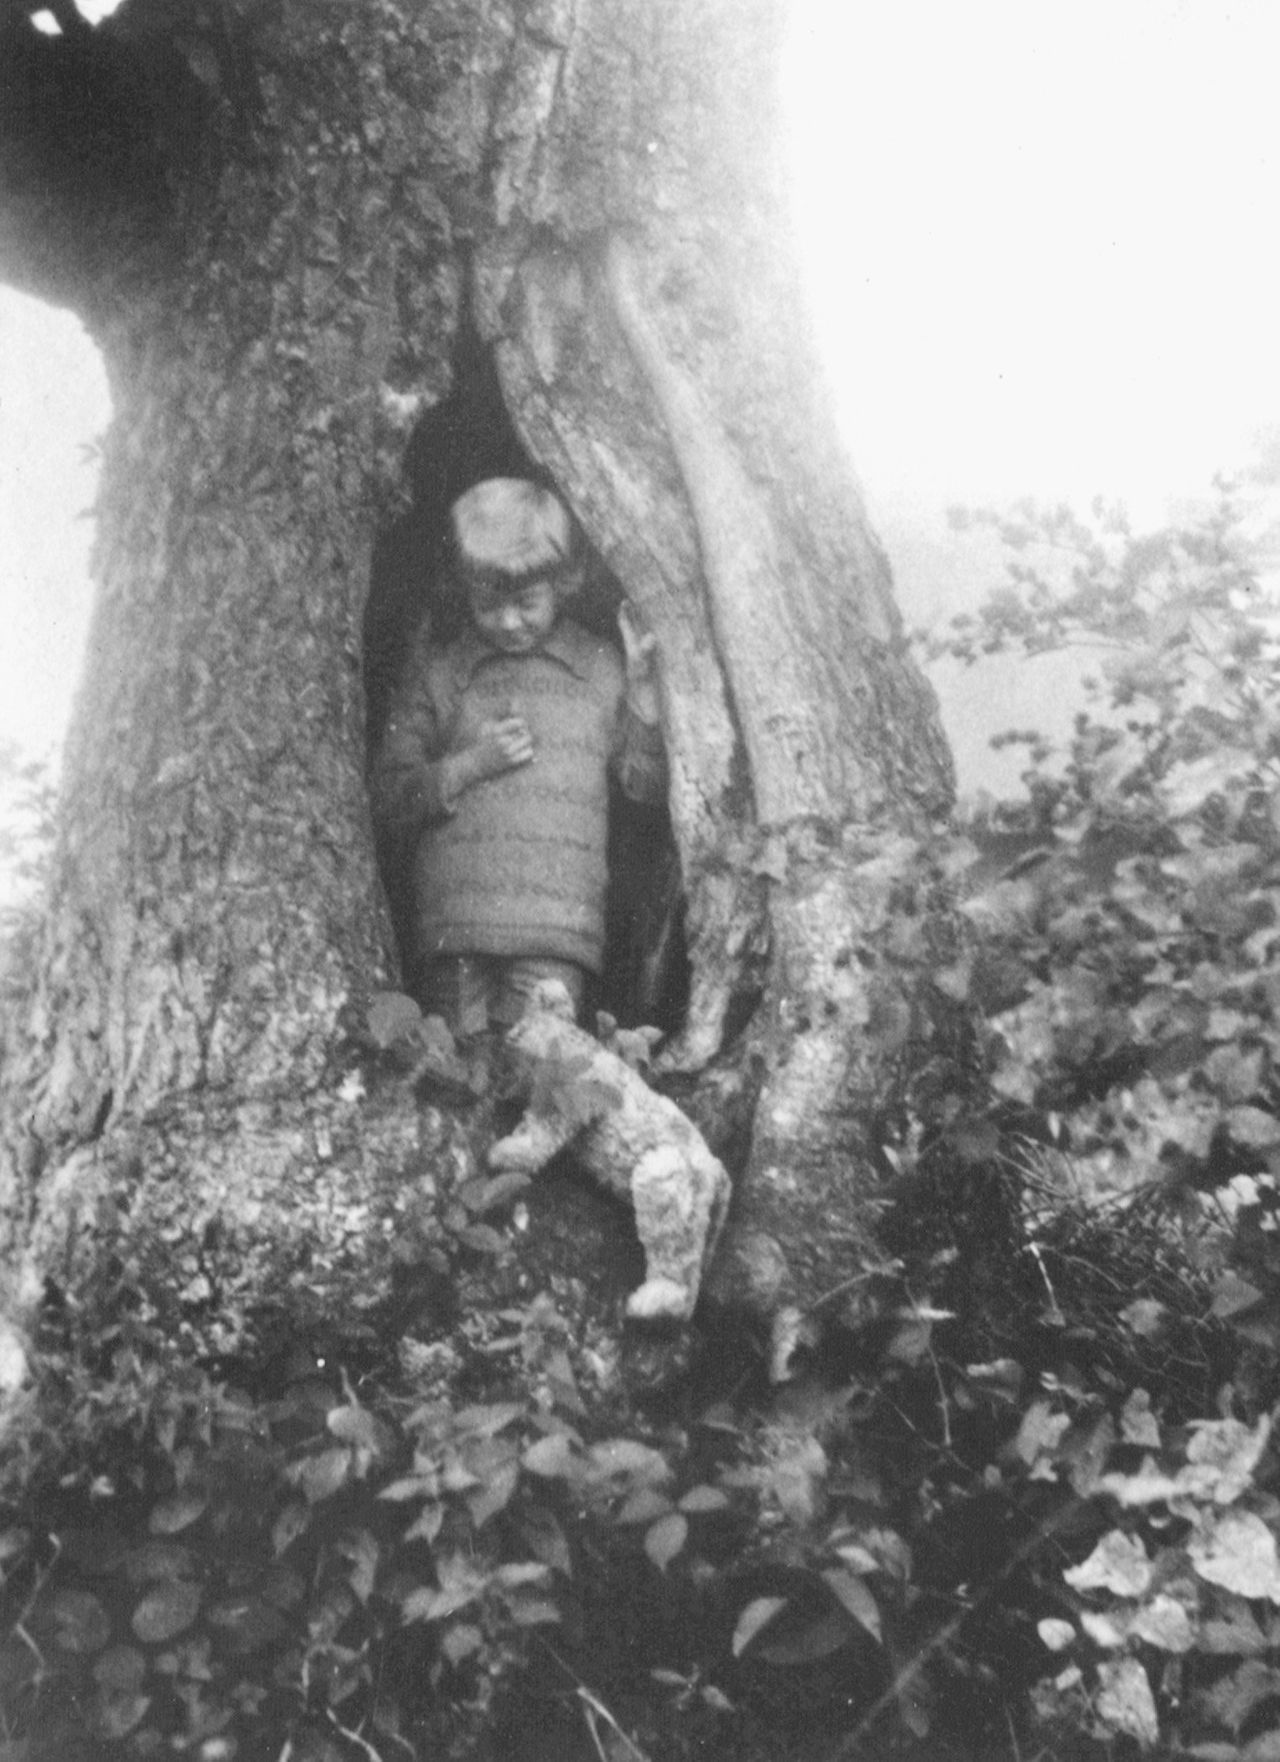 Christopher Robin with Pooh, Piglet, and Roo in the original walnut tree.